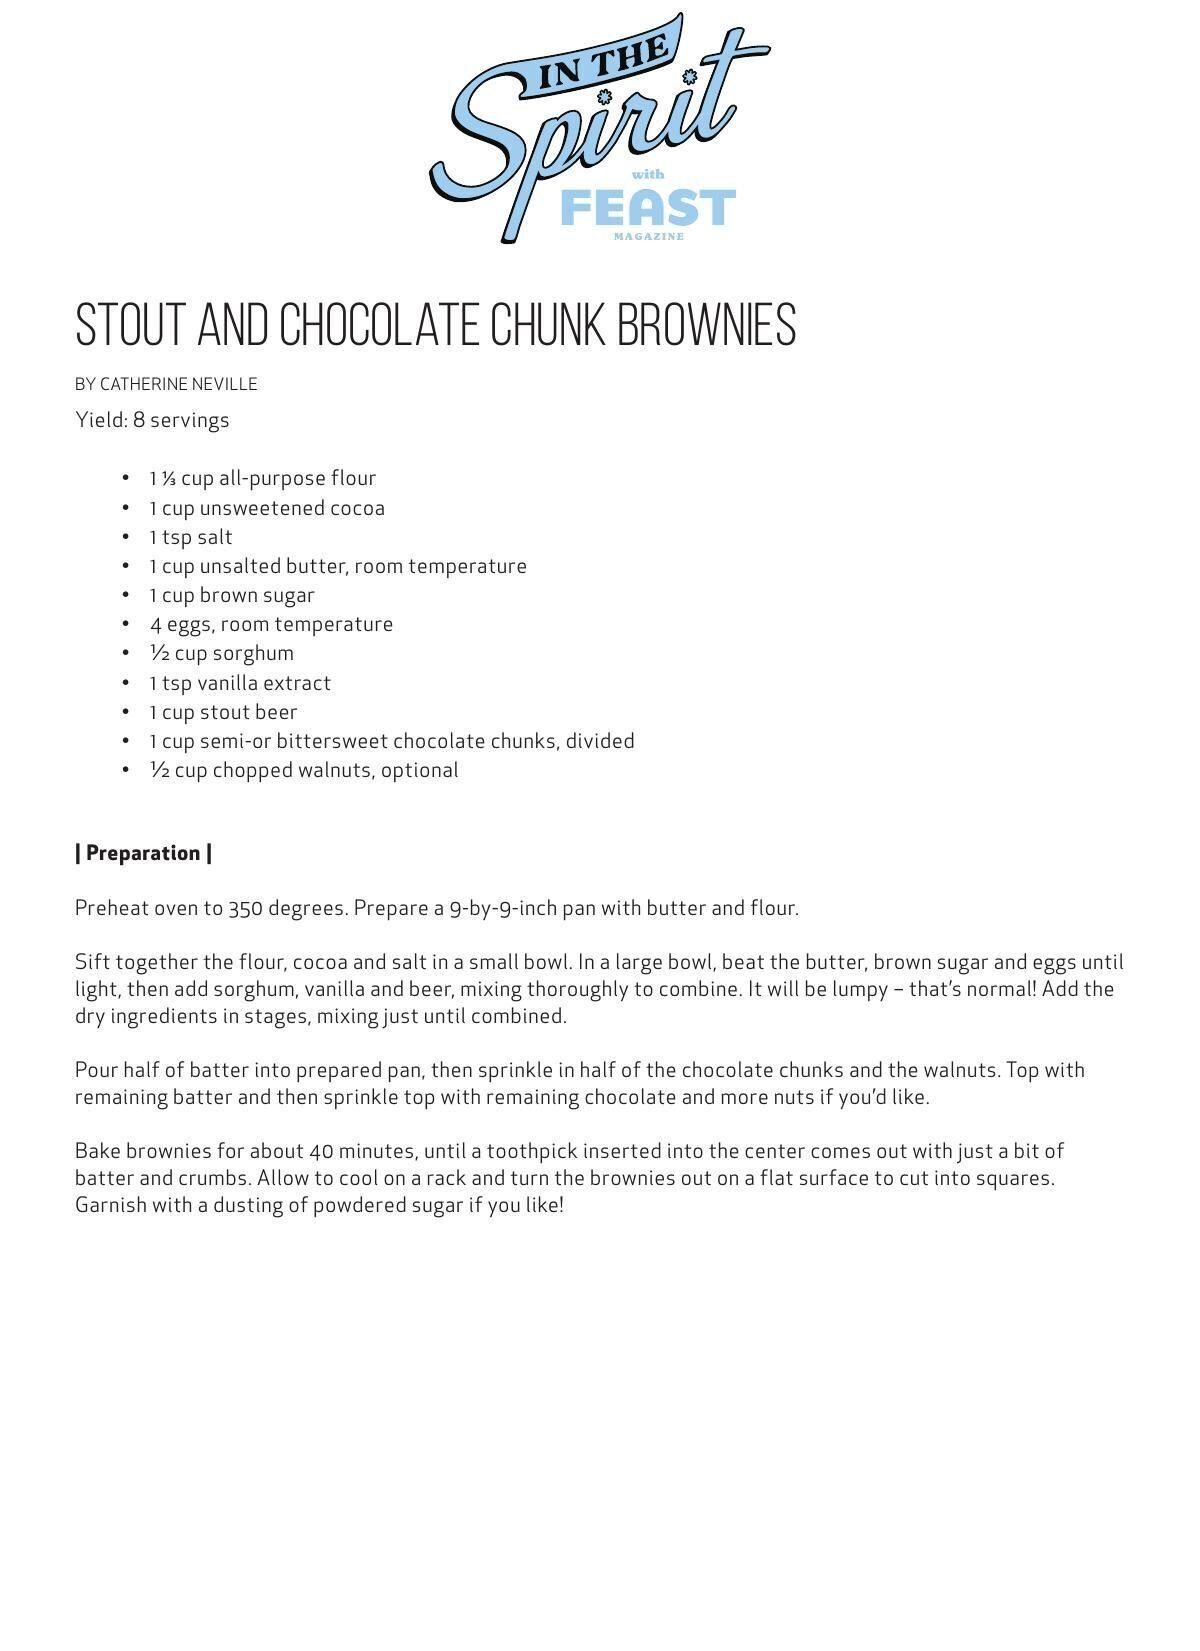 Download the Stout and Chocolate Chunk Brownies Recipe Here